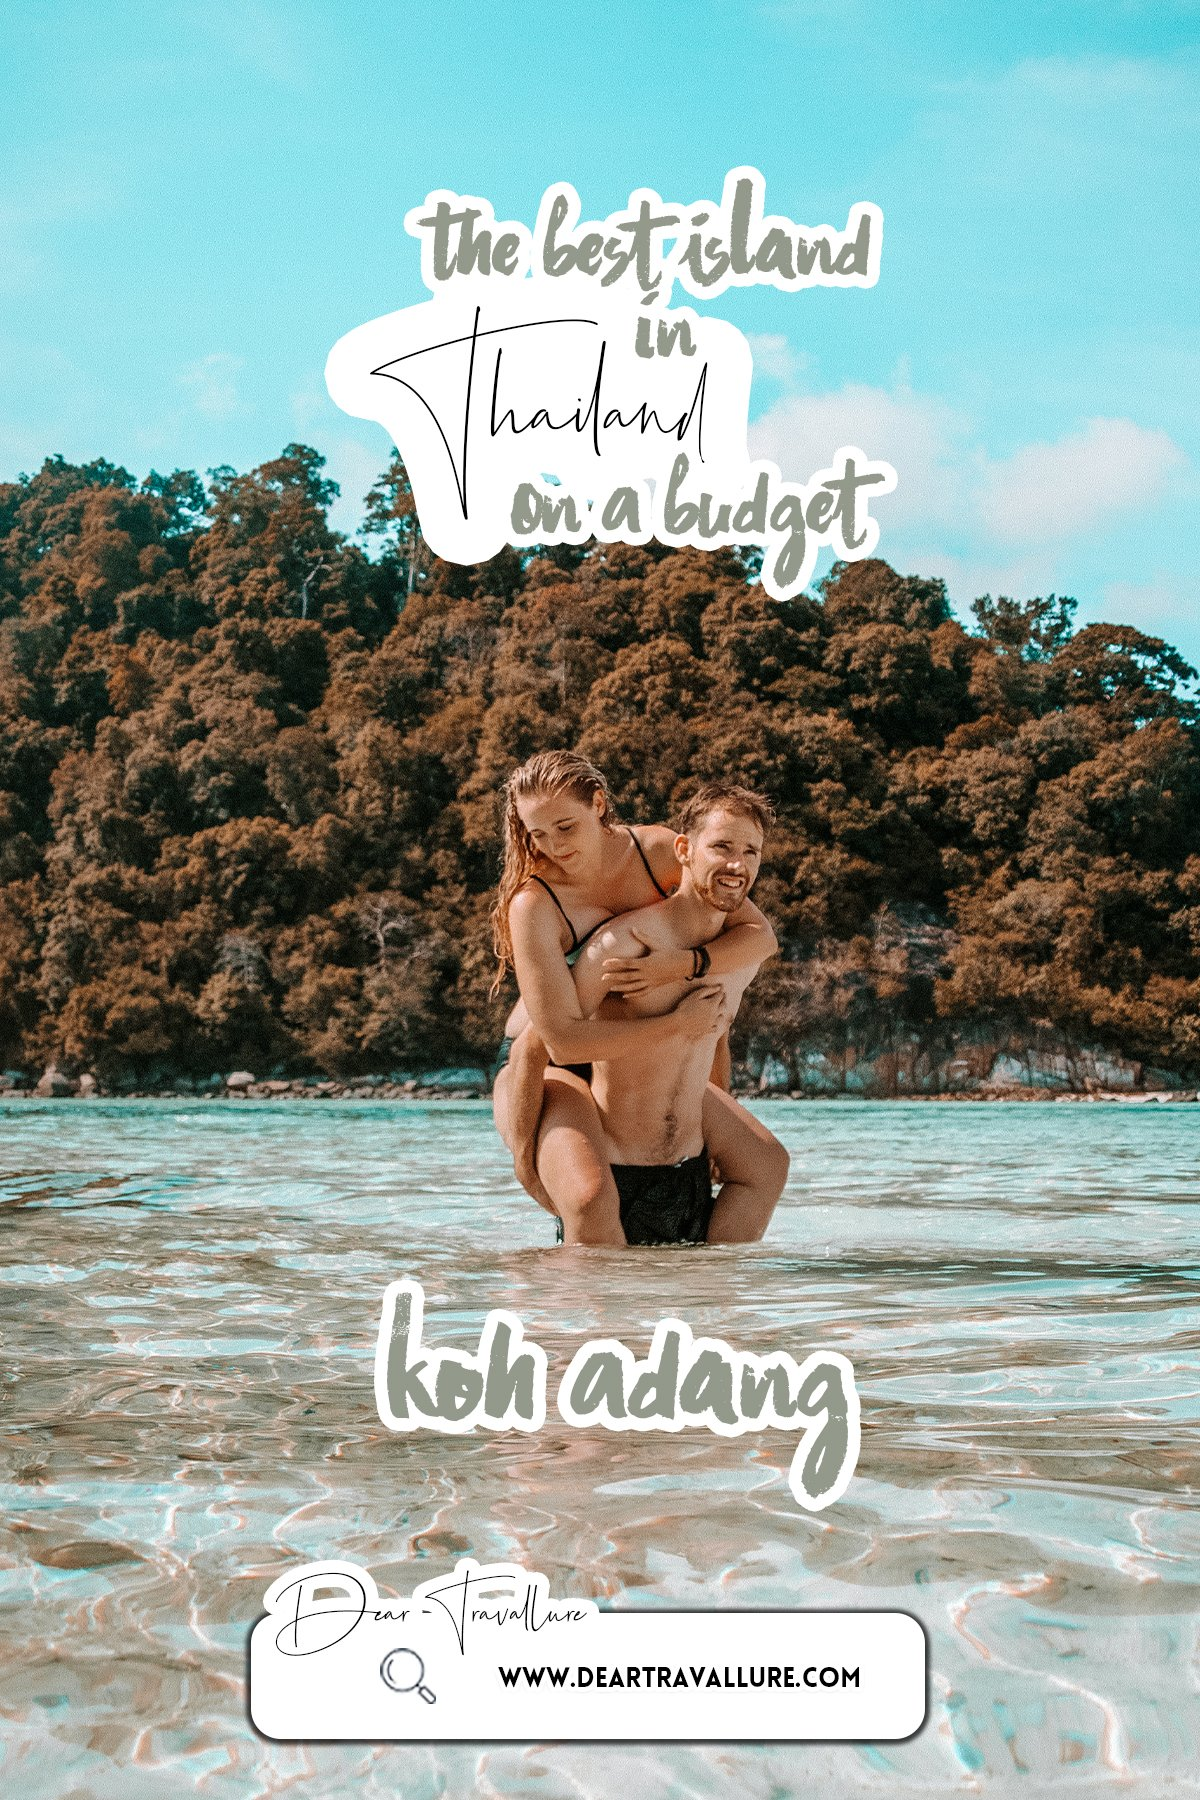 The Best Island - Koh Adang - Pinterest Image